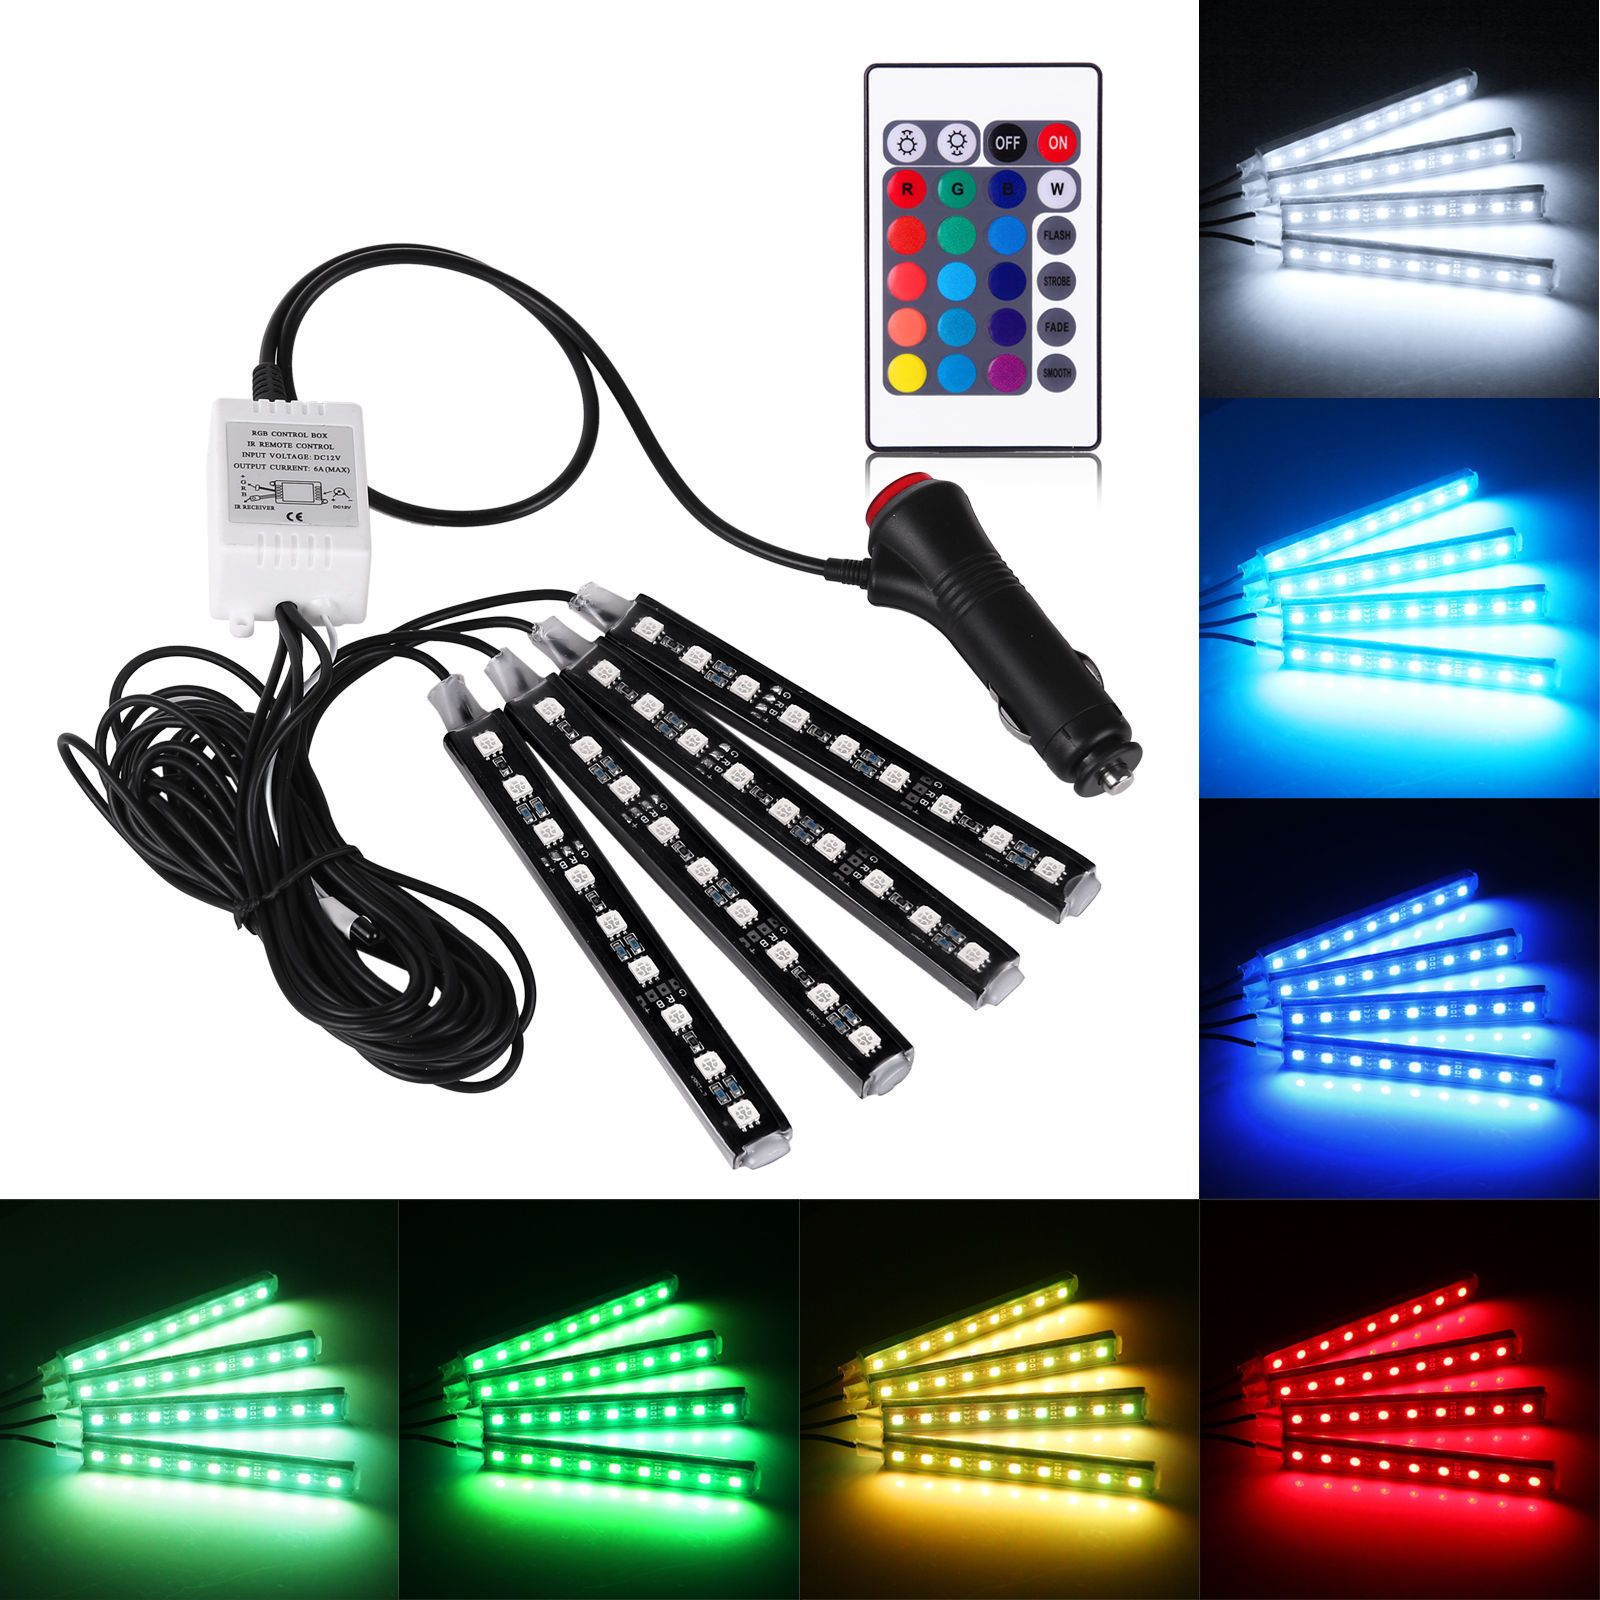 7 89 Remote Control 4x9led Colorful Rgb Car Interior Floor Atmosphere Light Strip Ebay Electronics Rgb Led Strip Lights Strip Lighting Interior Led Lights